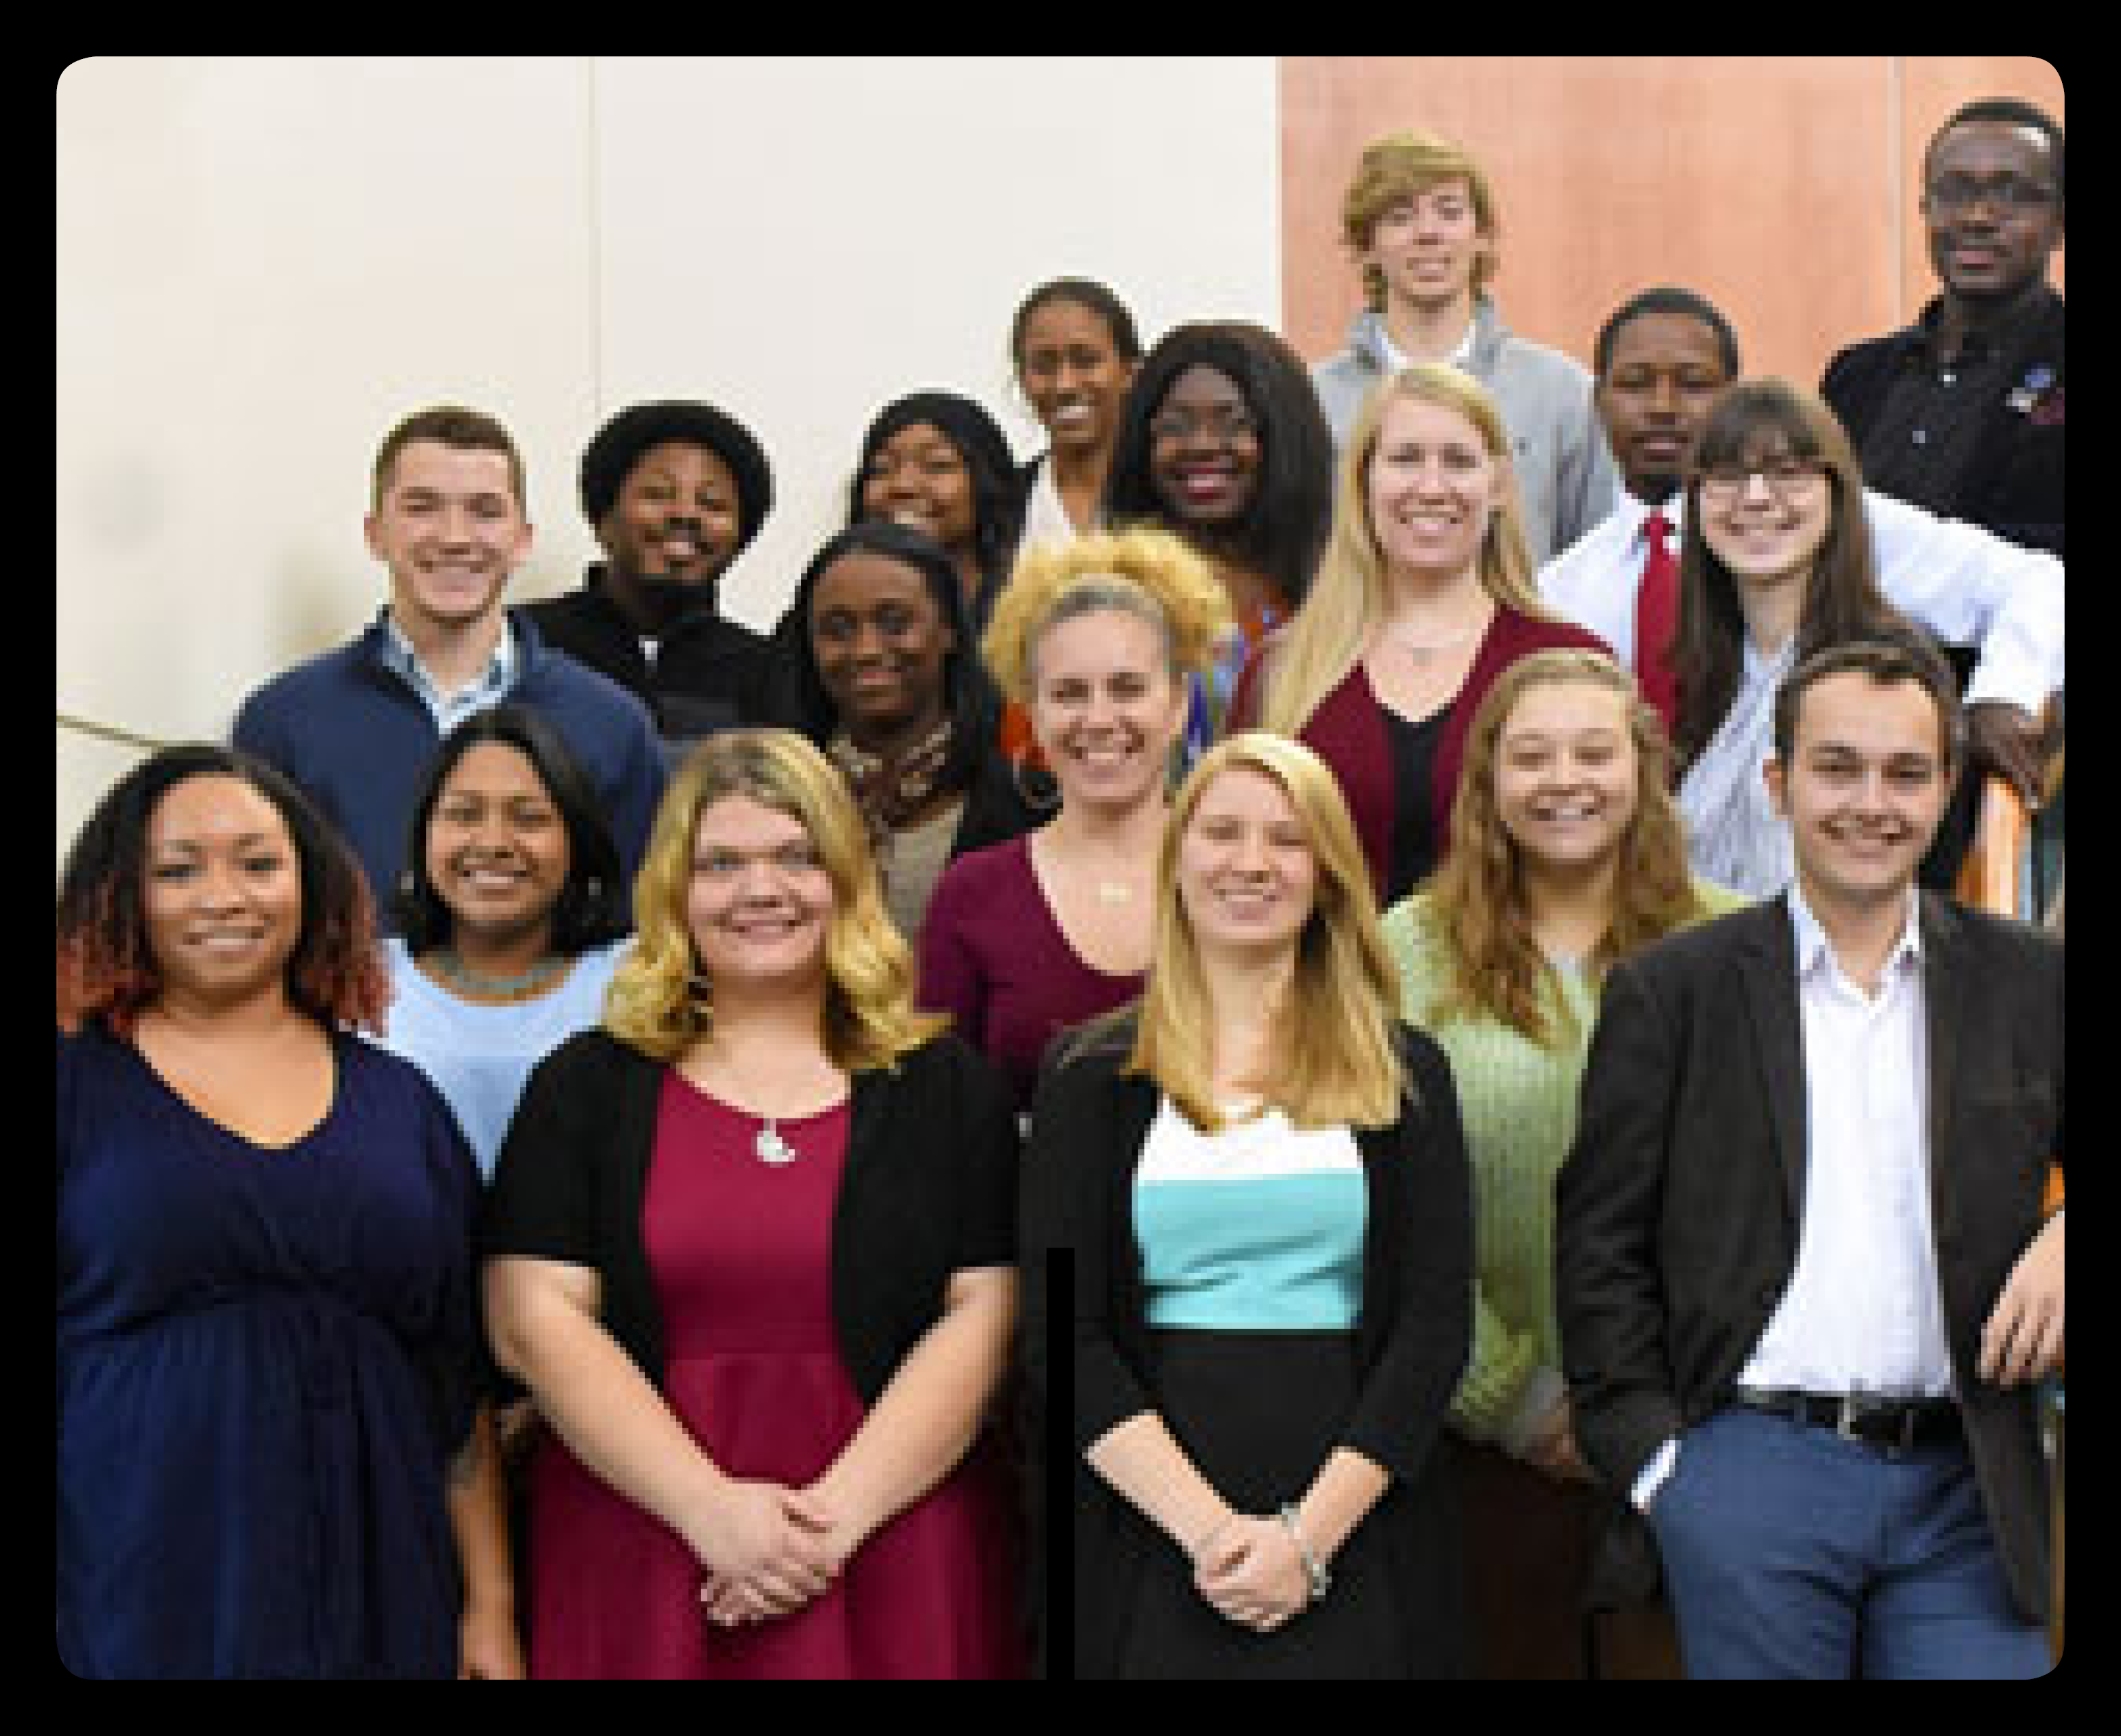 The Maryland Higher Education Commission Student Advisory Council was created in 1988, in response to a legislative directive.